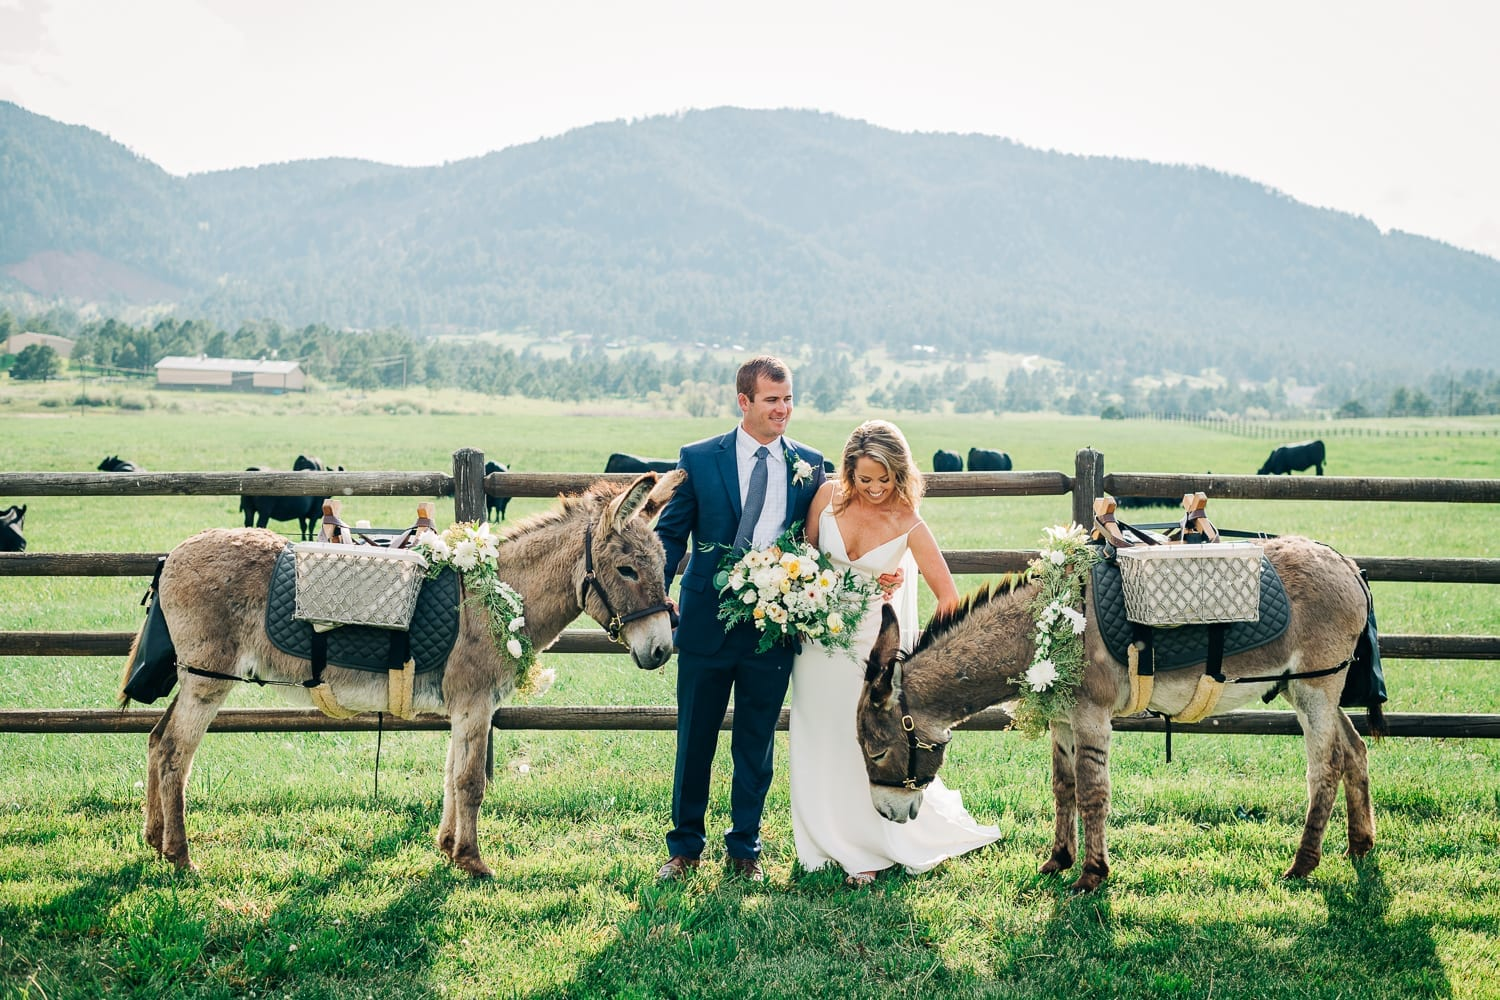 From the Hip Photo | Cloud Nine Colorado wedding and event planner